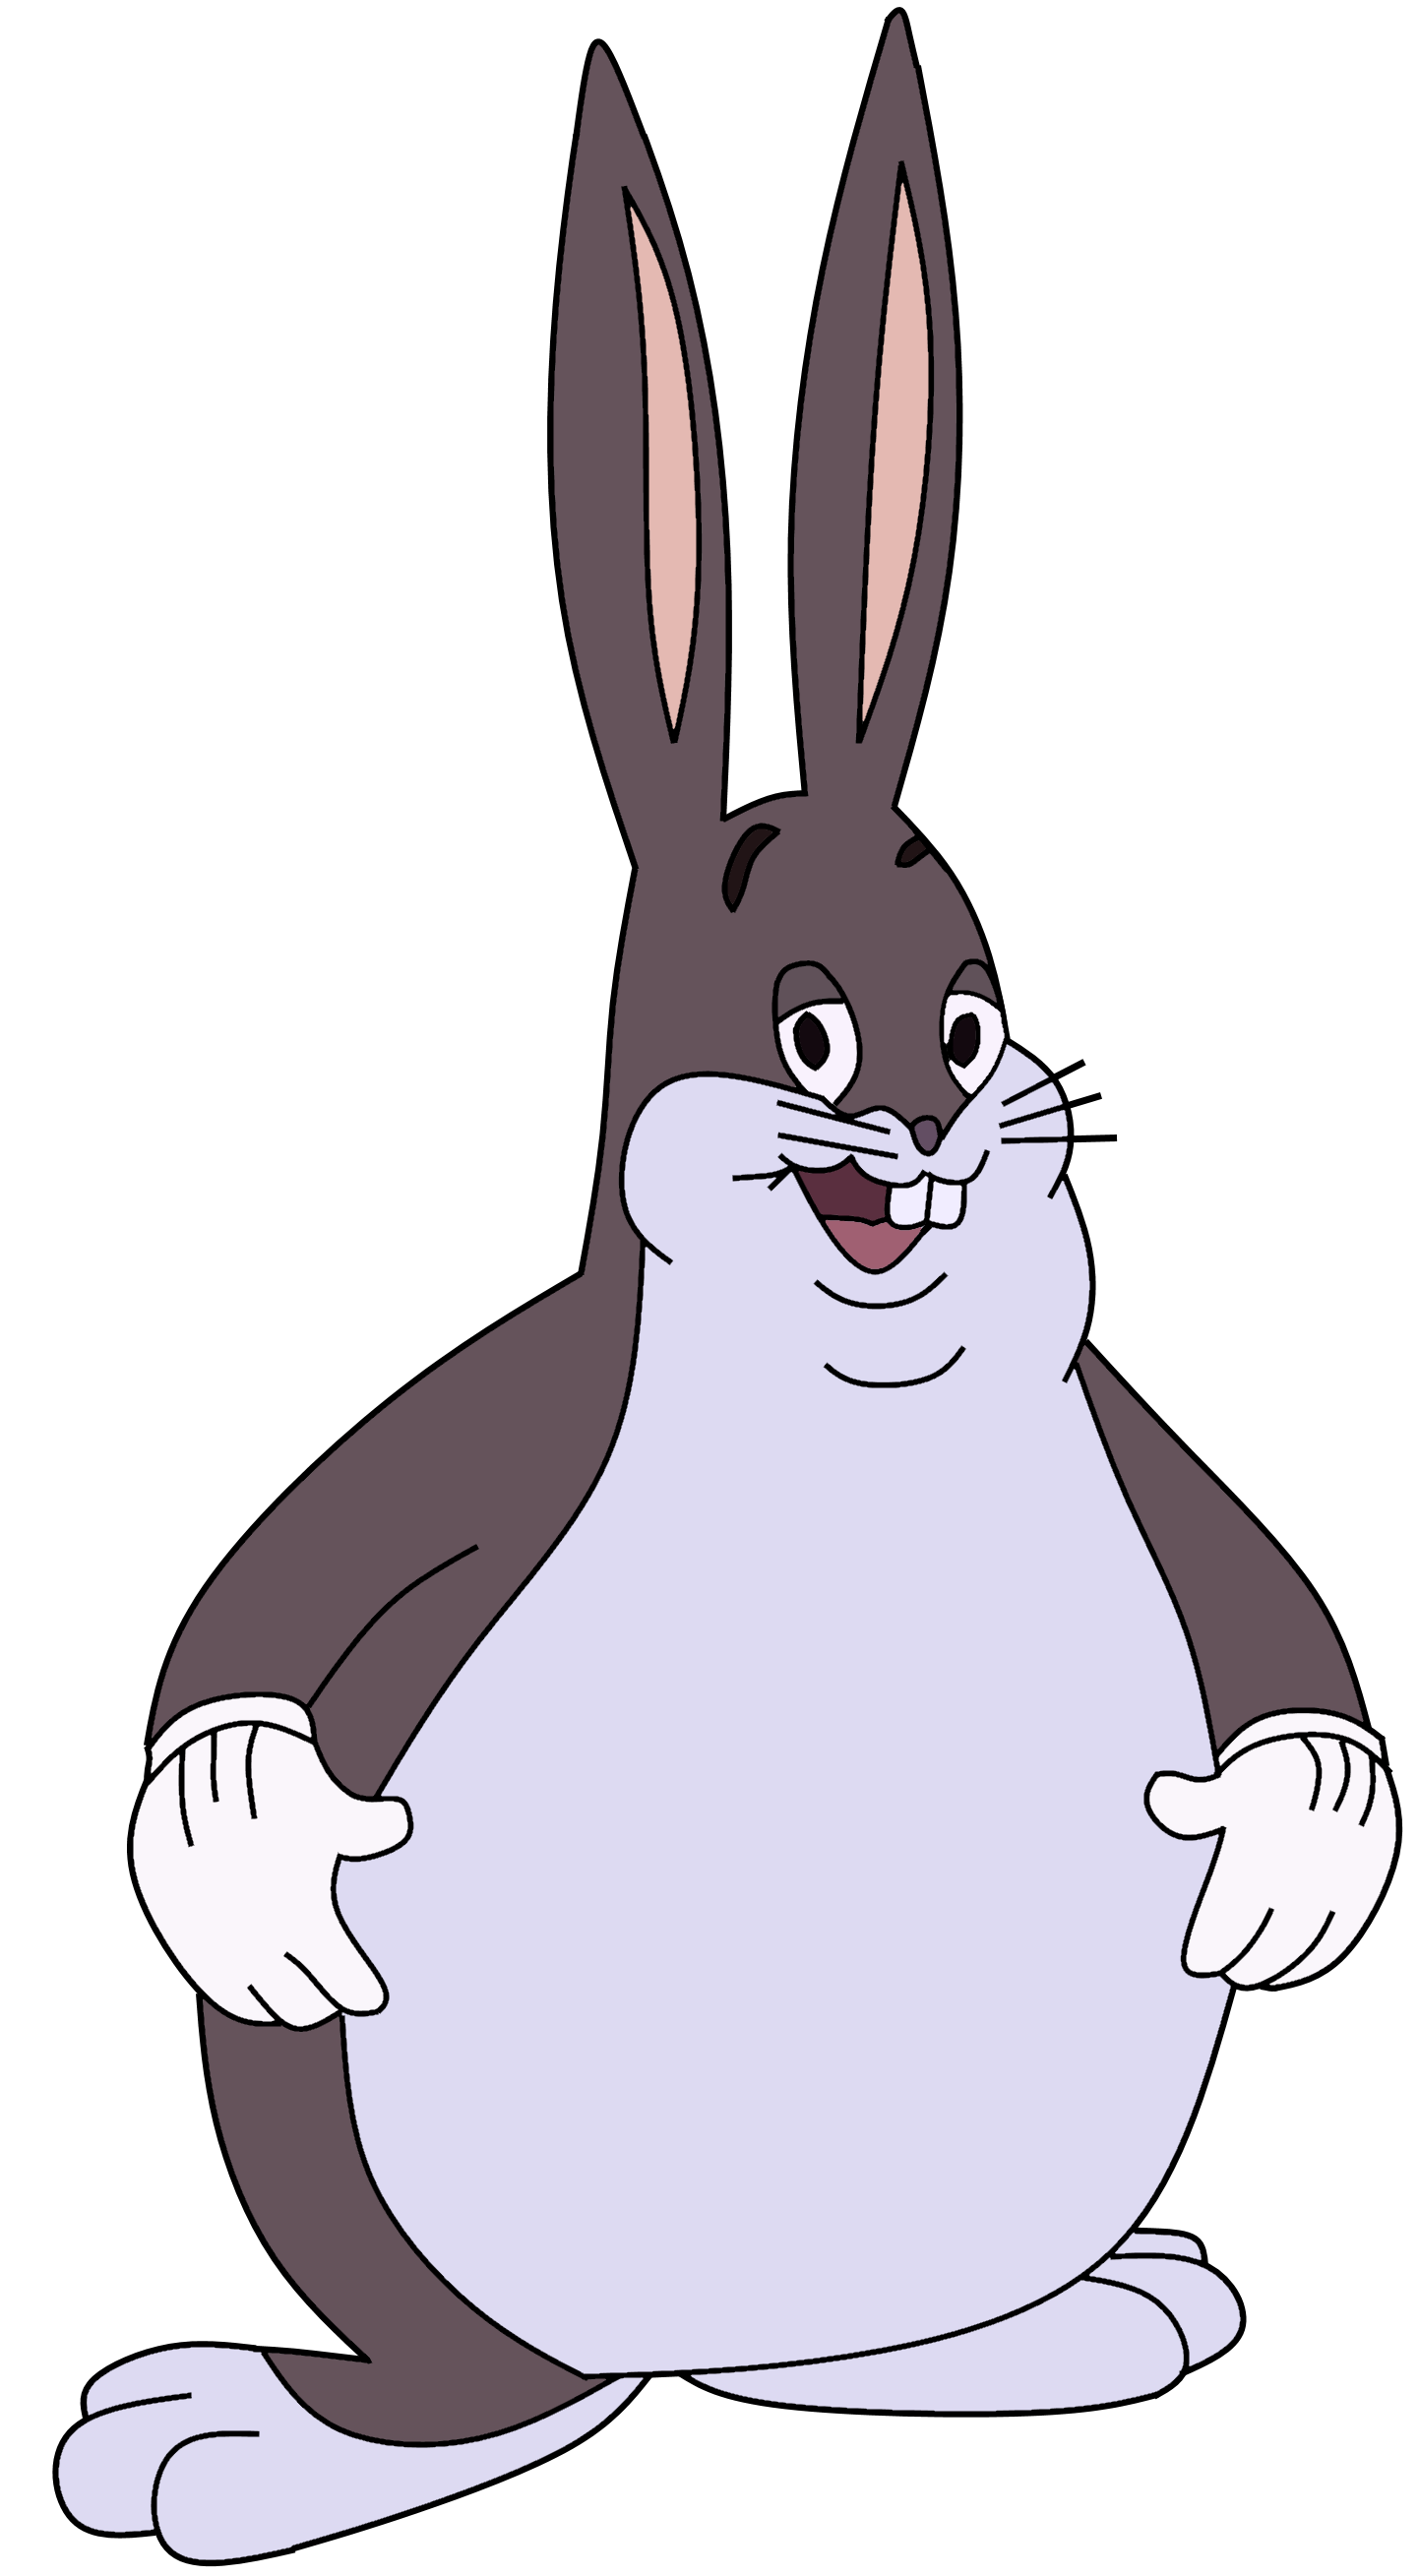 Big chungus clipart normal. Hi reddit i m